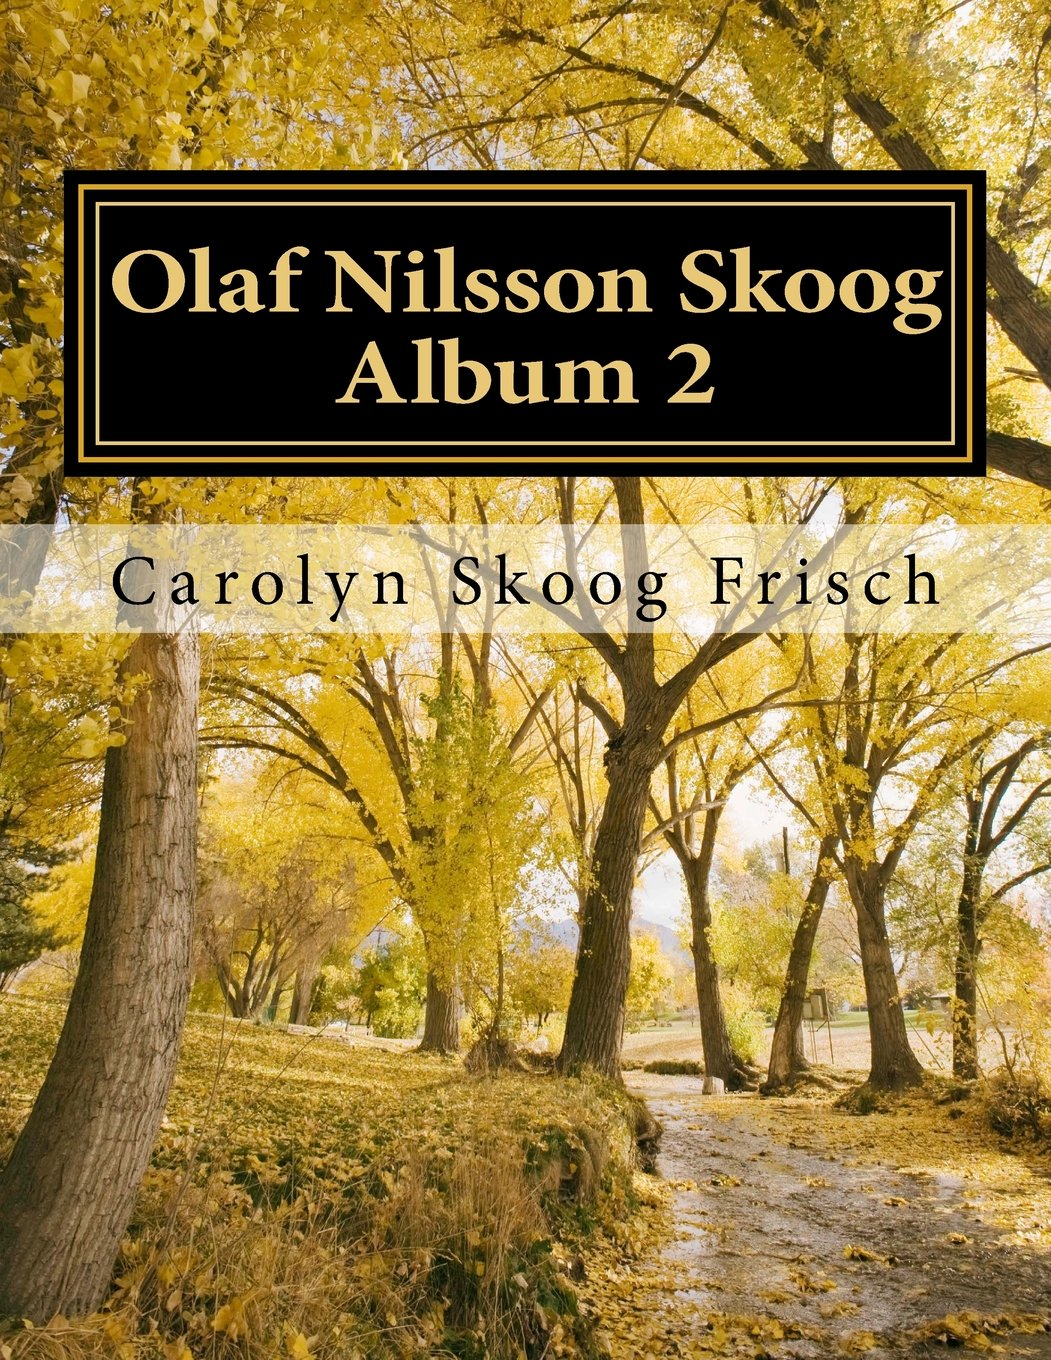 Olaf Nilsson Skoog - Album 2 (Volume 2) ebook